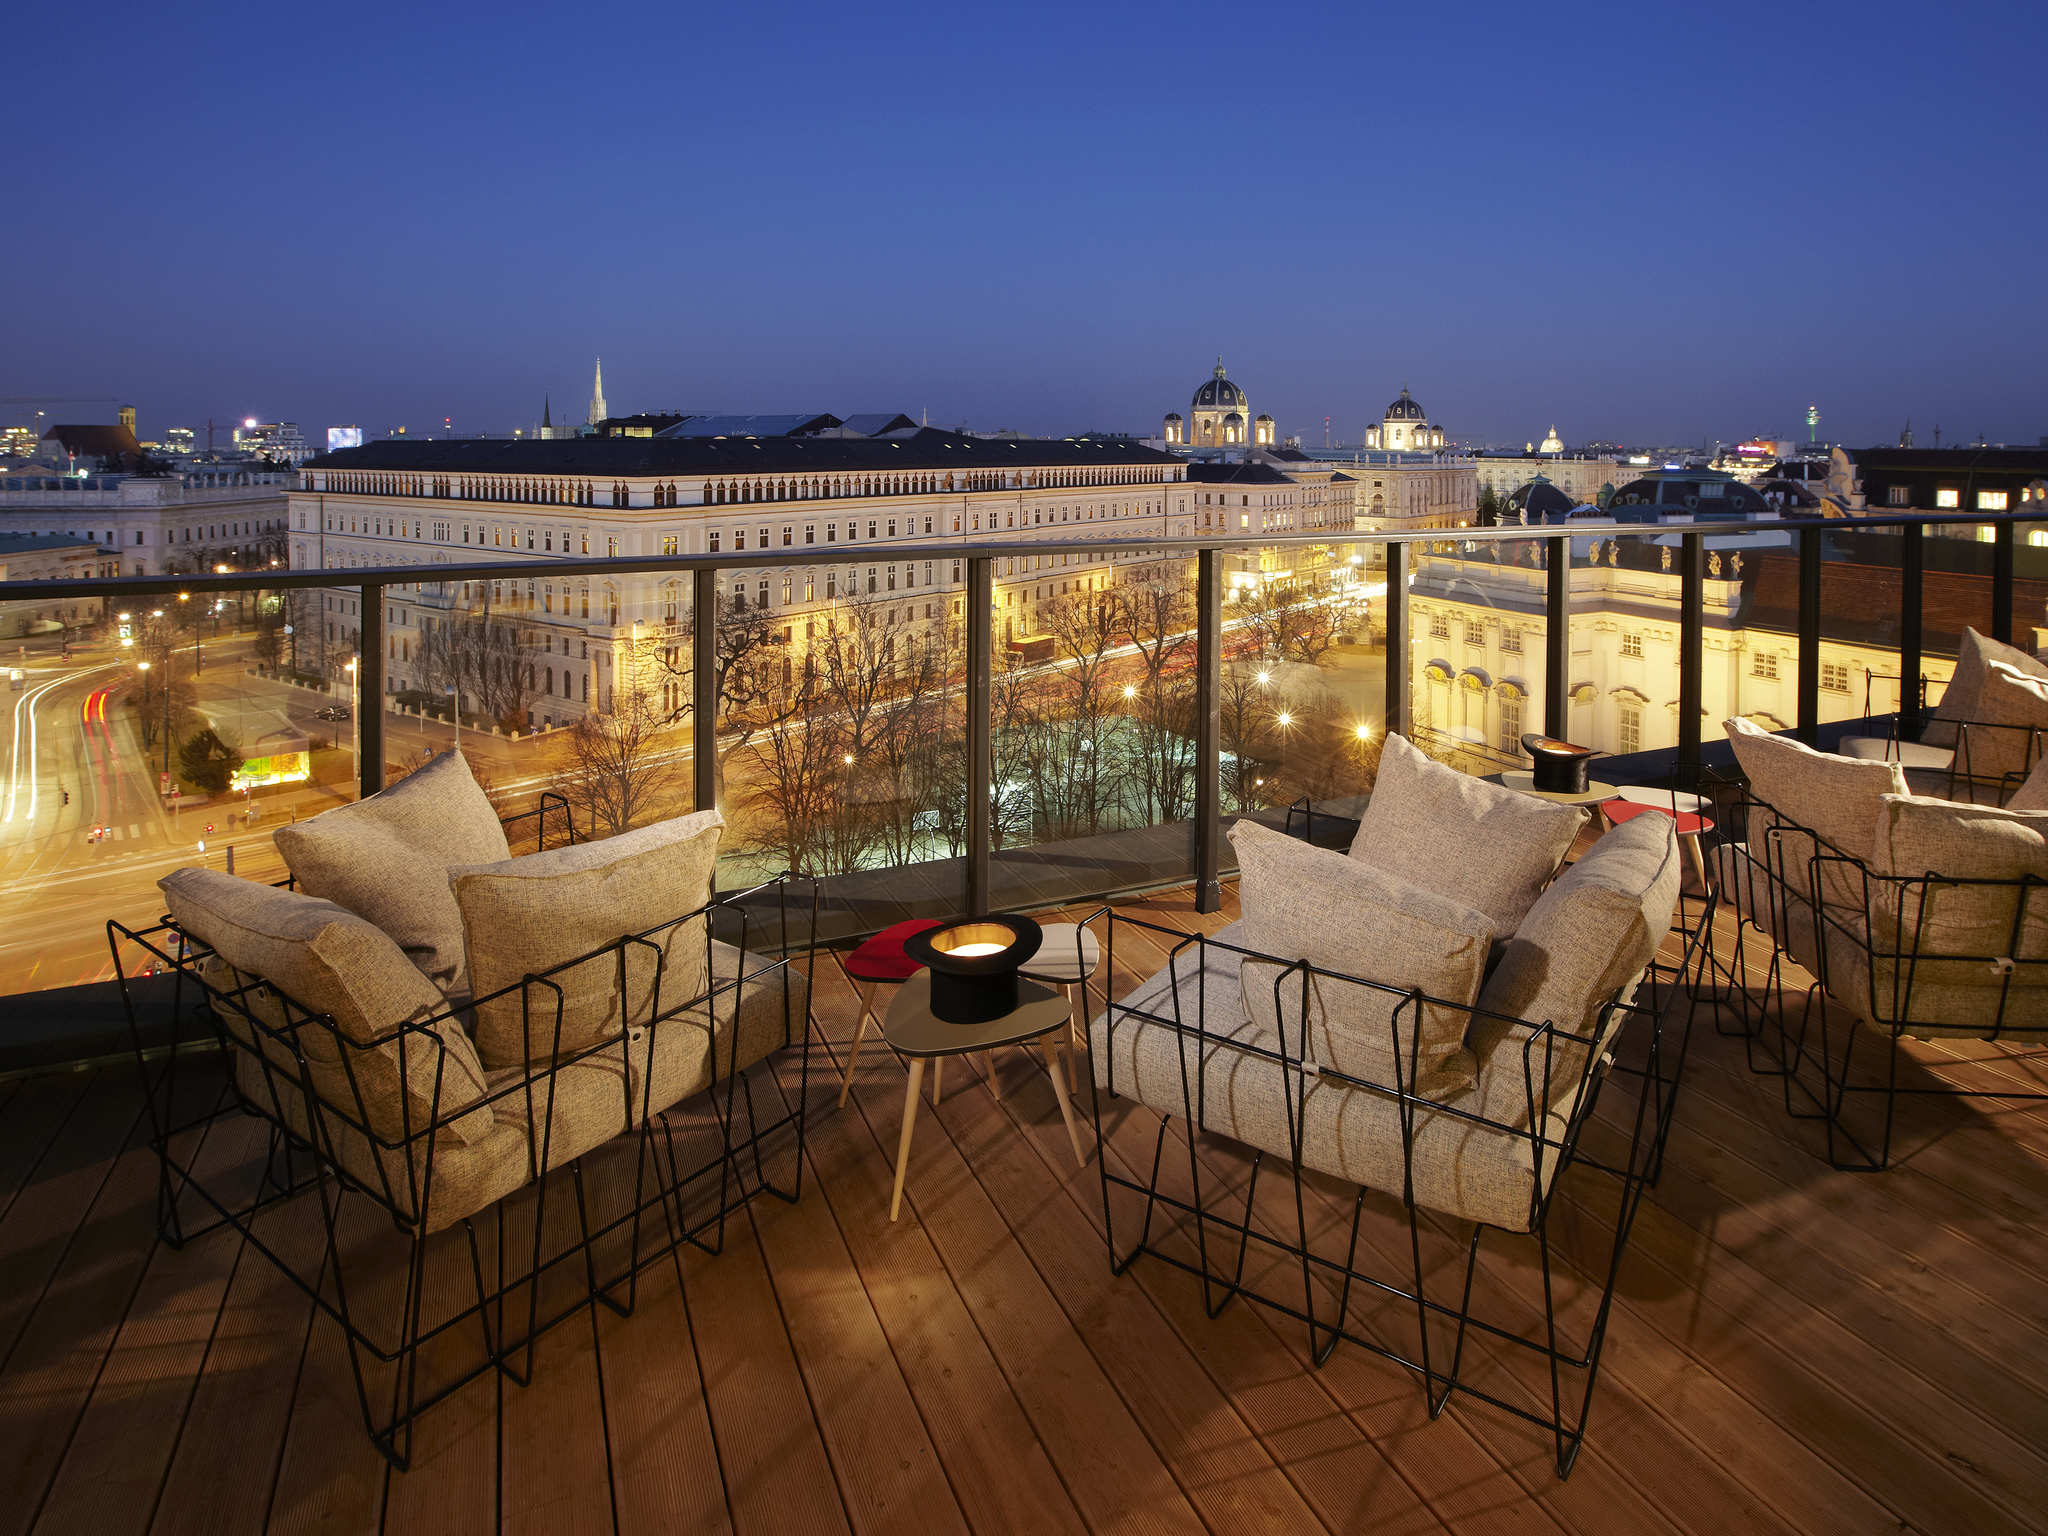 Hotel – 25hours Hotel Vienna at MuseumsQuartier